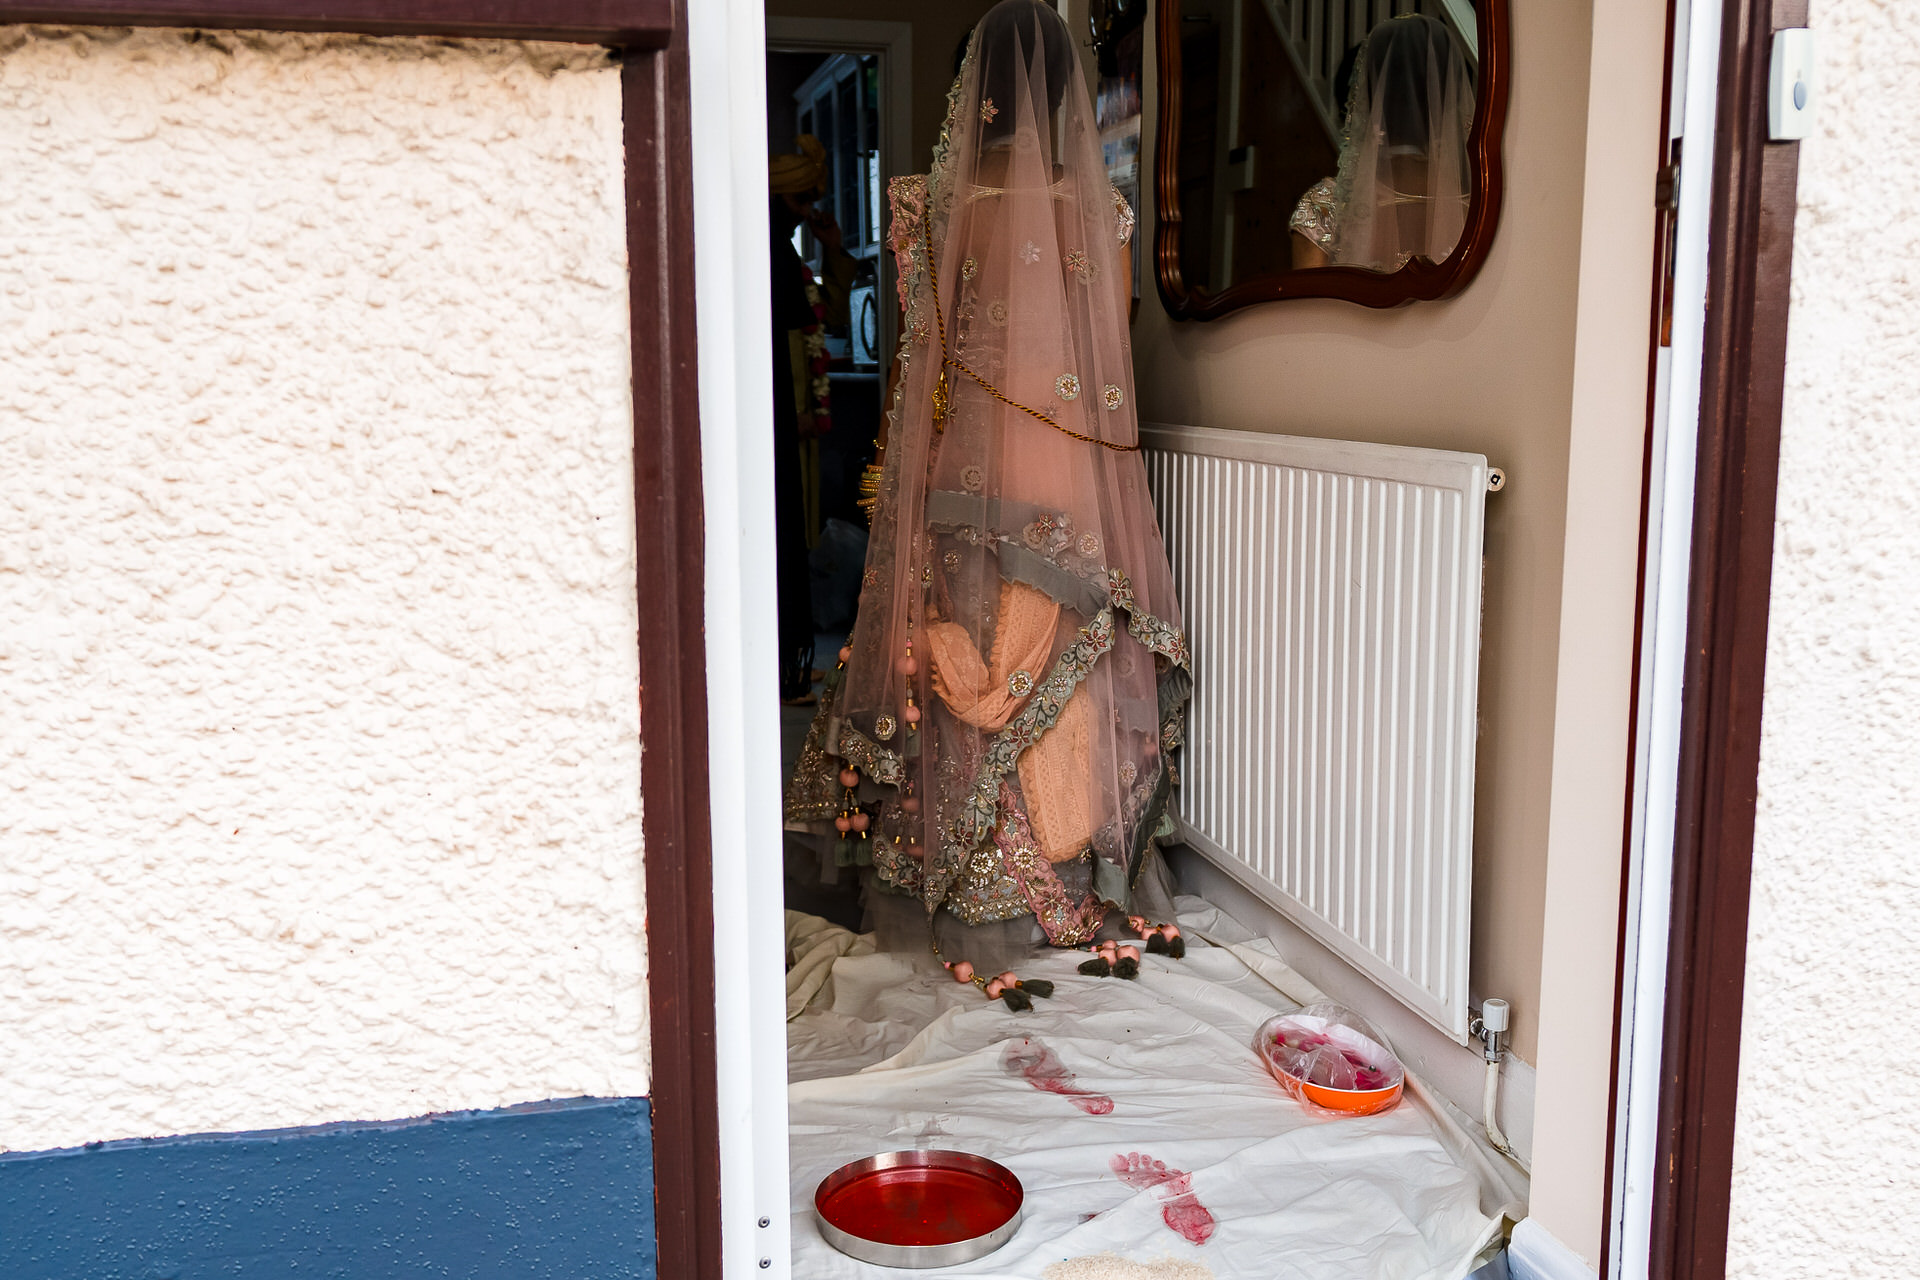 Asian Elopement Photographer for Indian Weddings UK | The bride enters her new home